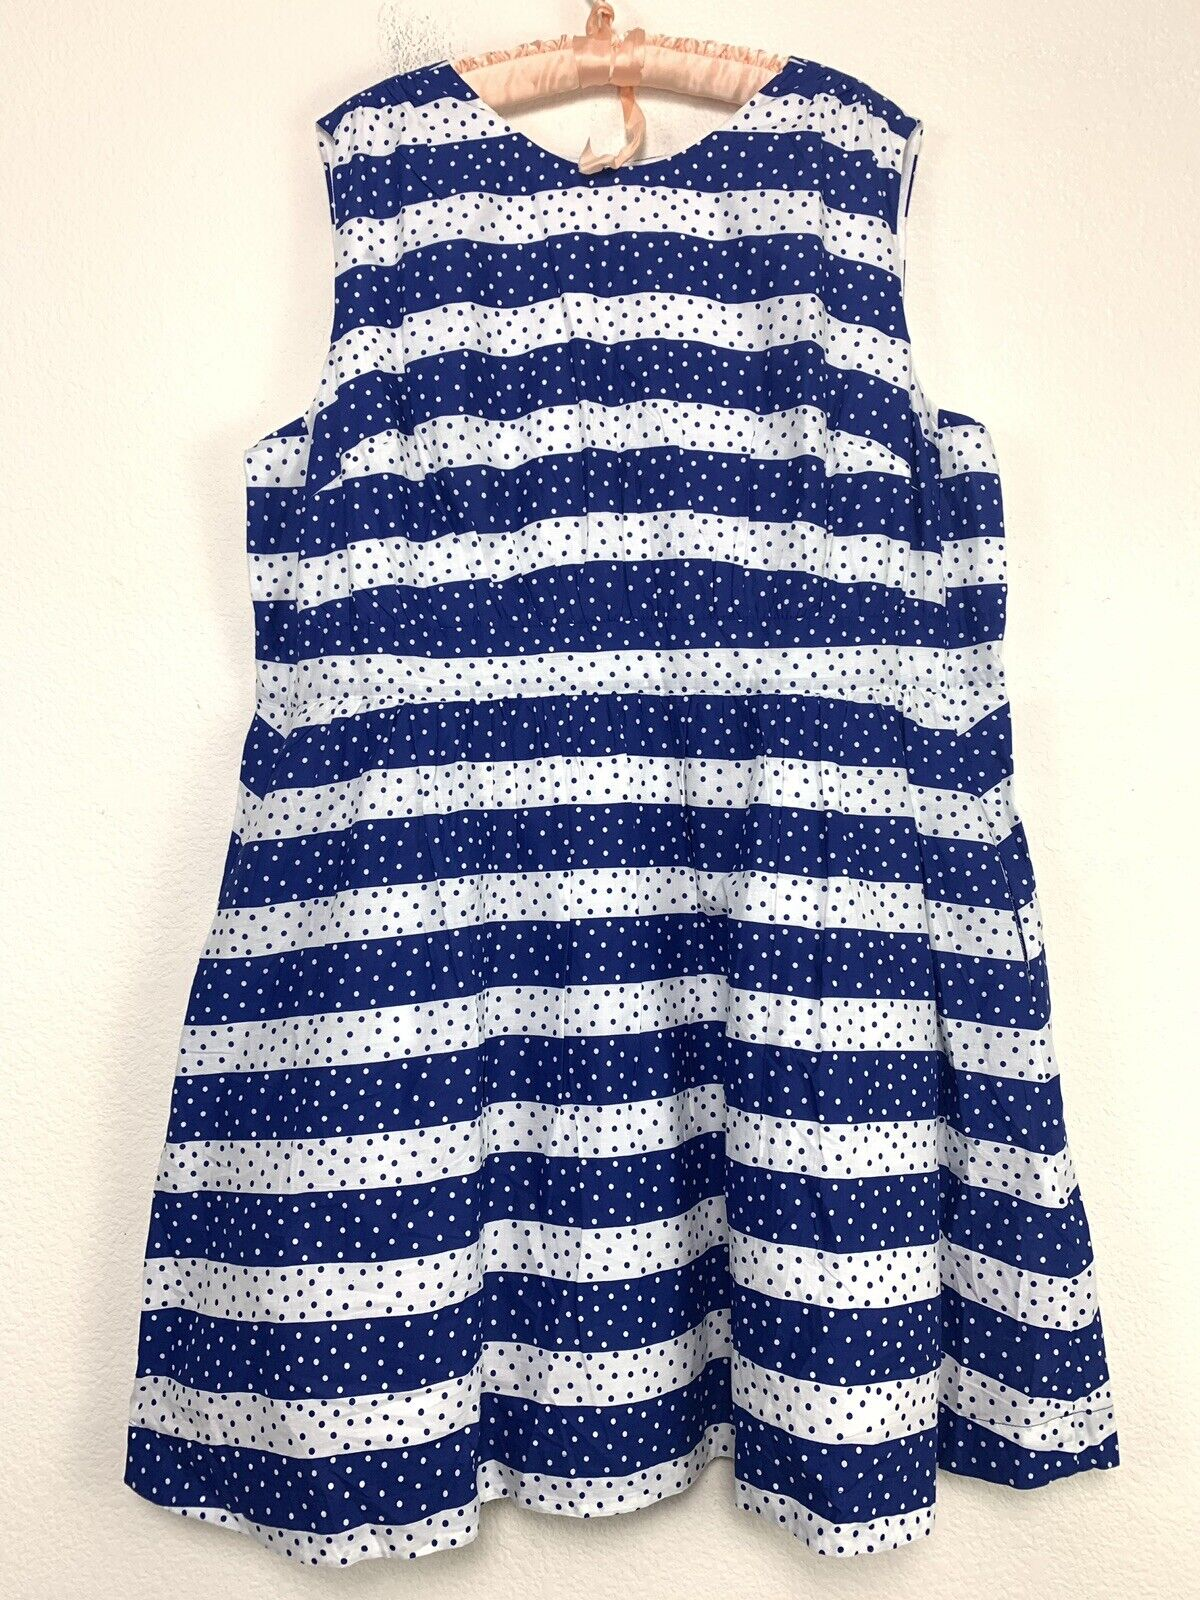 Emily And Fin Modcloth Too Much Blau Weiß Fun Dotted Stripe Dress Retro 3x NEW